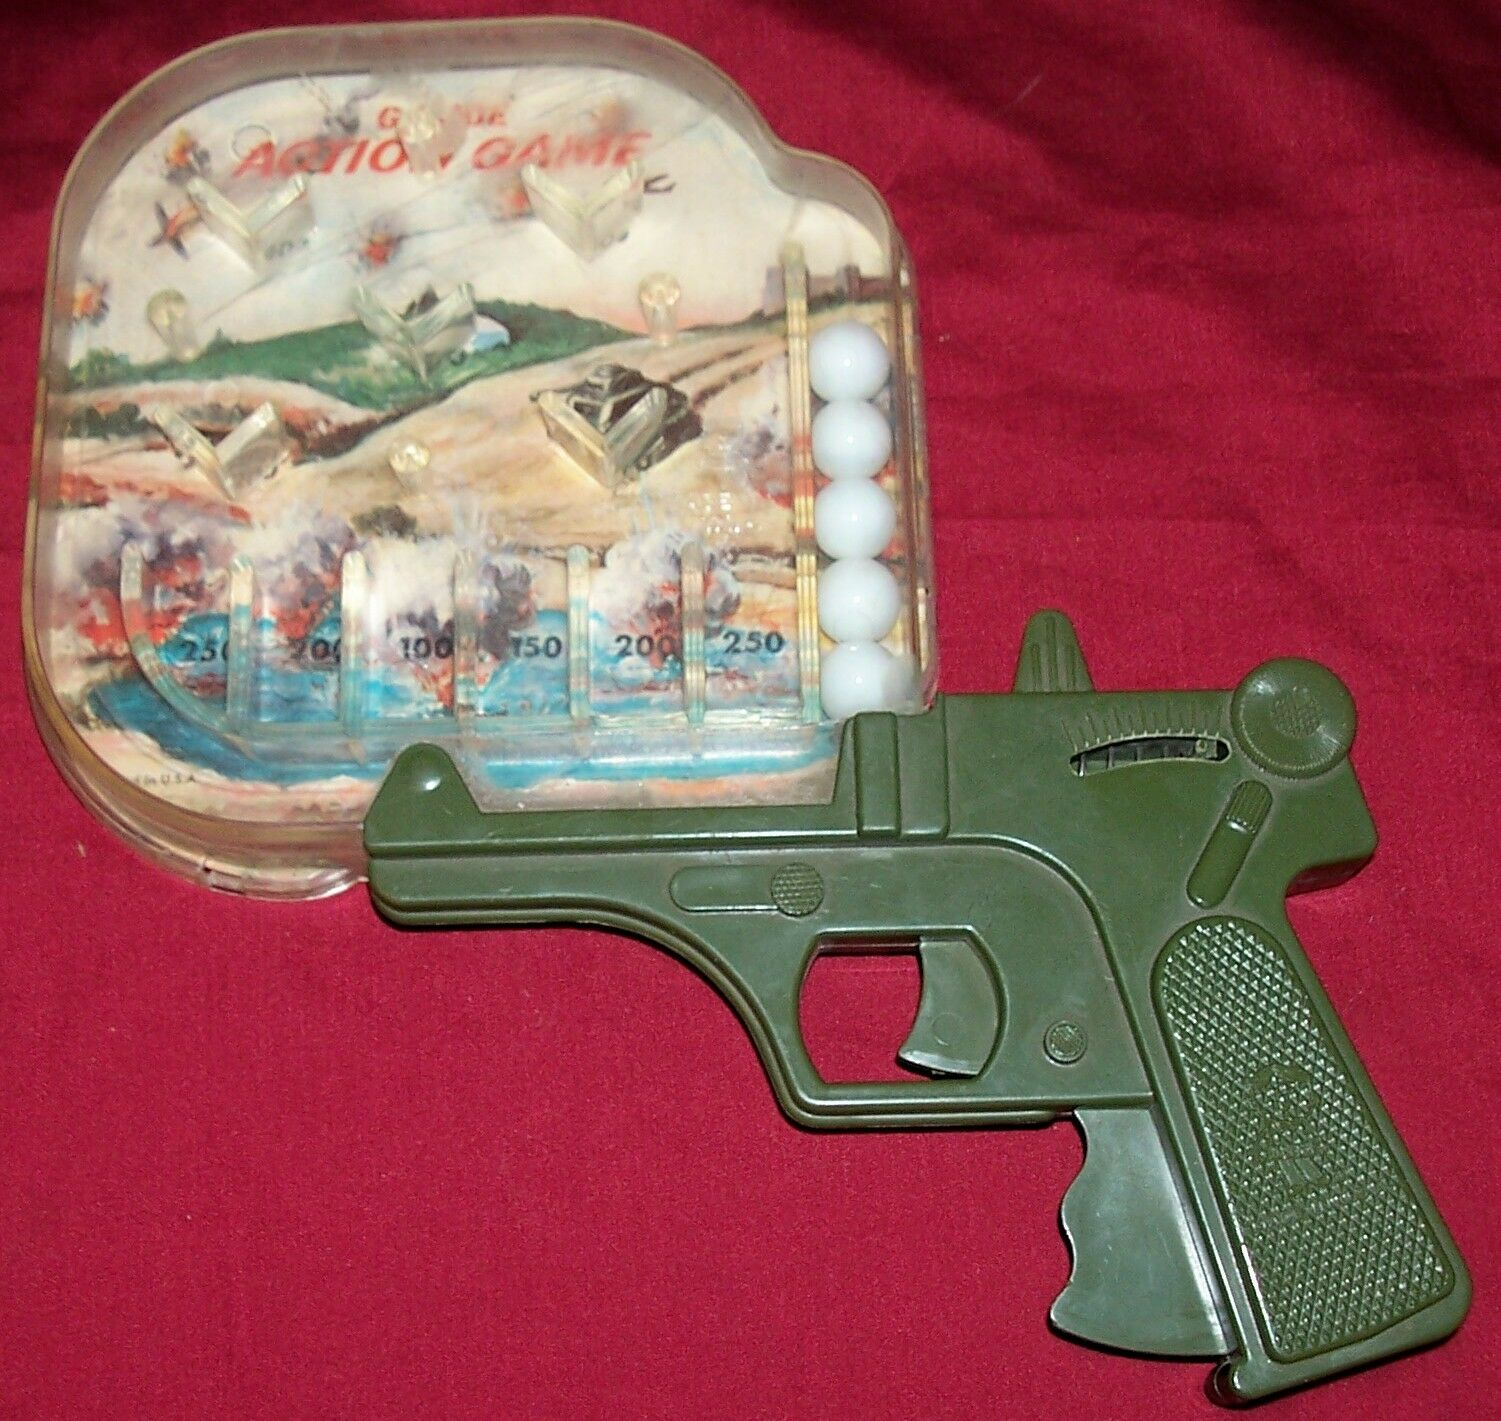 Old GI Joe Action Marble Shooting Game Pistol Gun Vintage Hasbro USA Toy Pinball